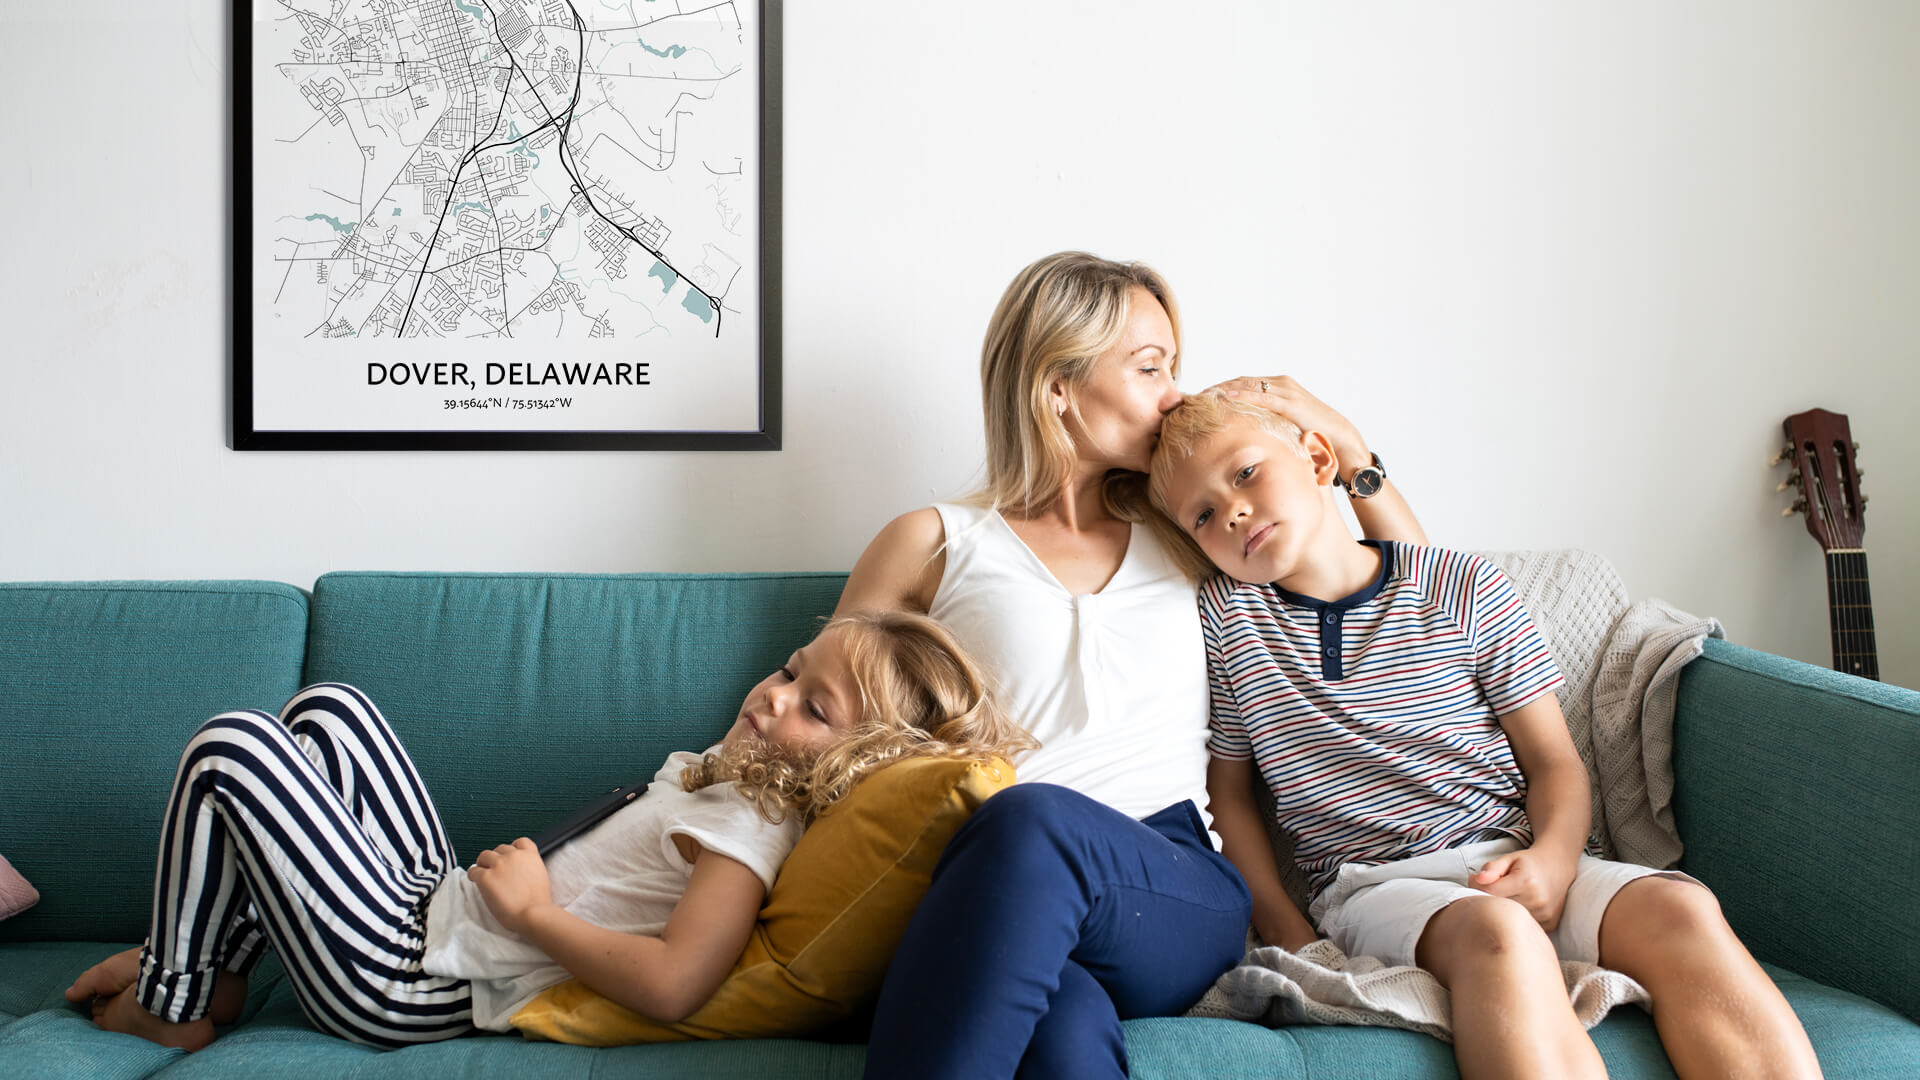 Dover map poster